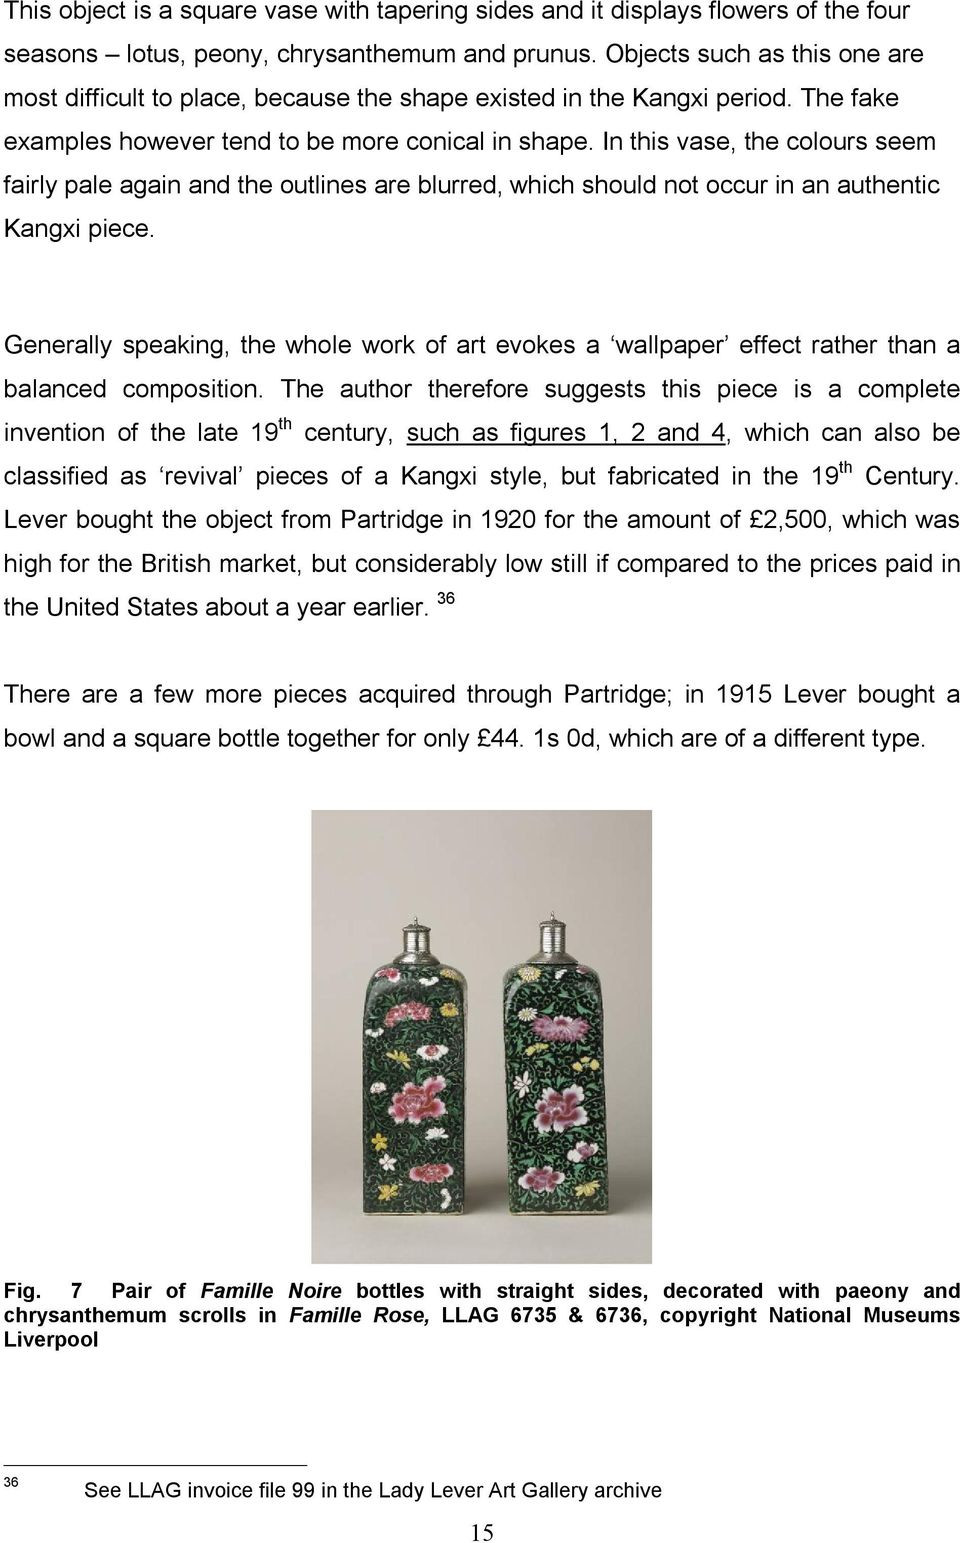 wedgwood vases for sale of william lever s collecting of famille noire porcelain pdf pertaining to in this vase the colours seem fairly pale again and the outlines are blurred